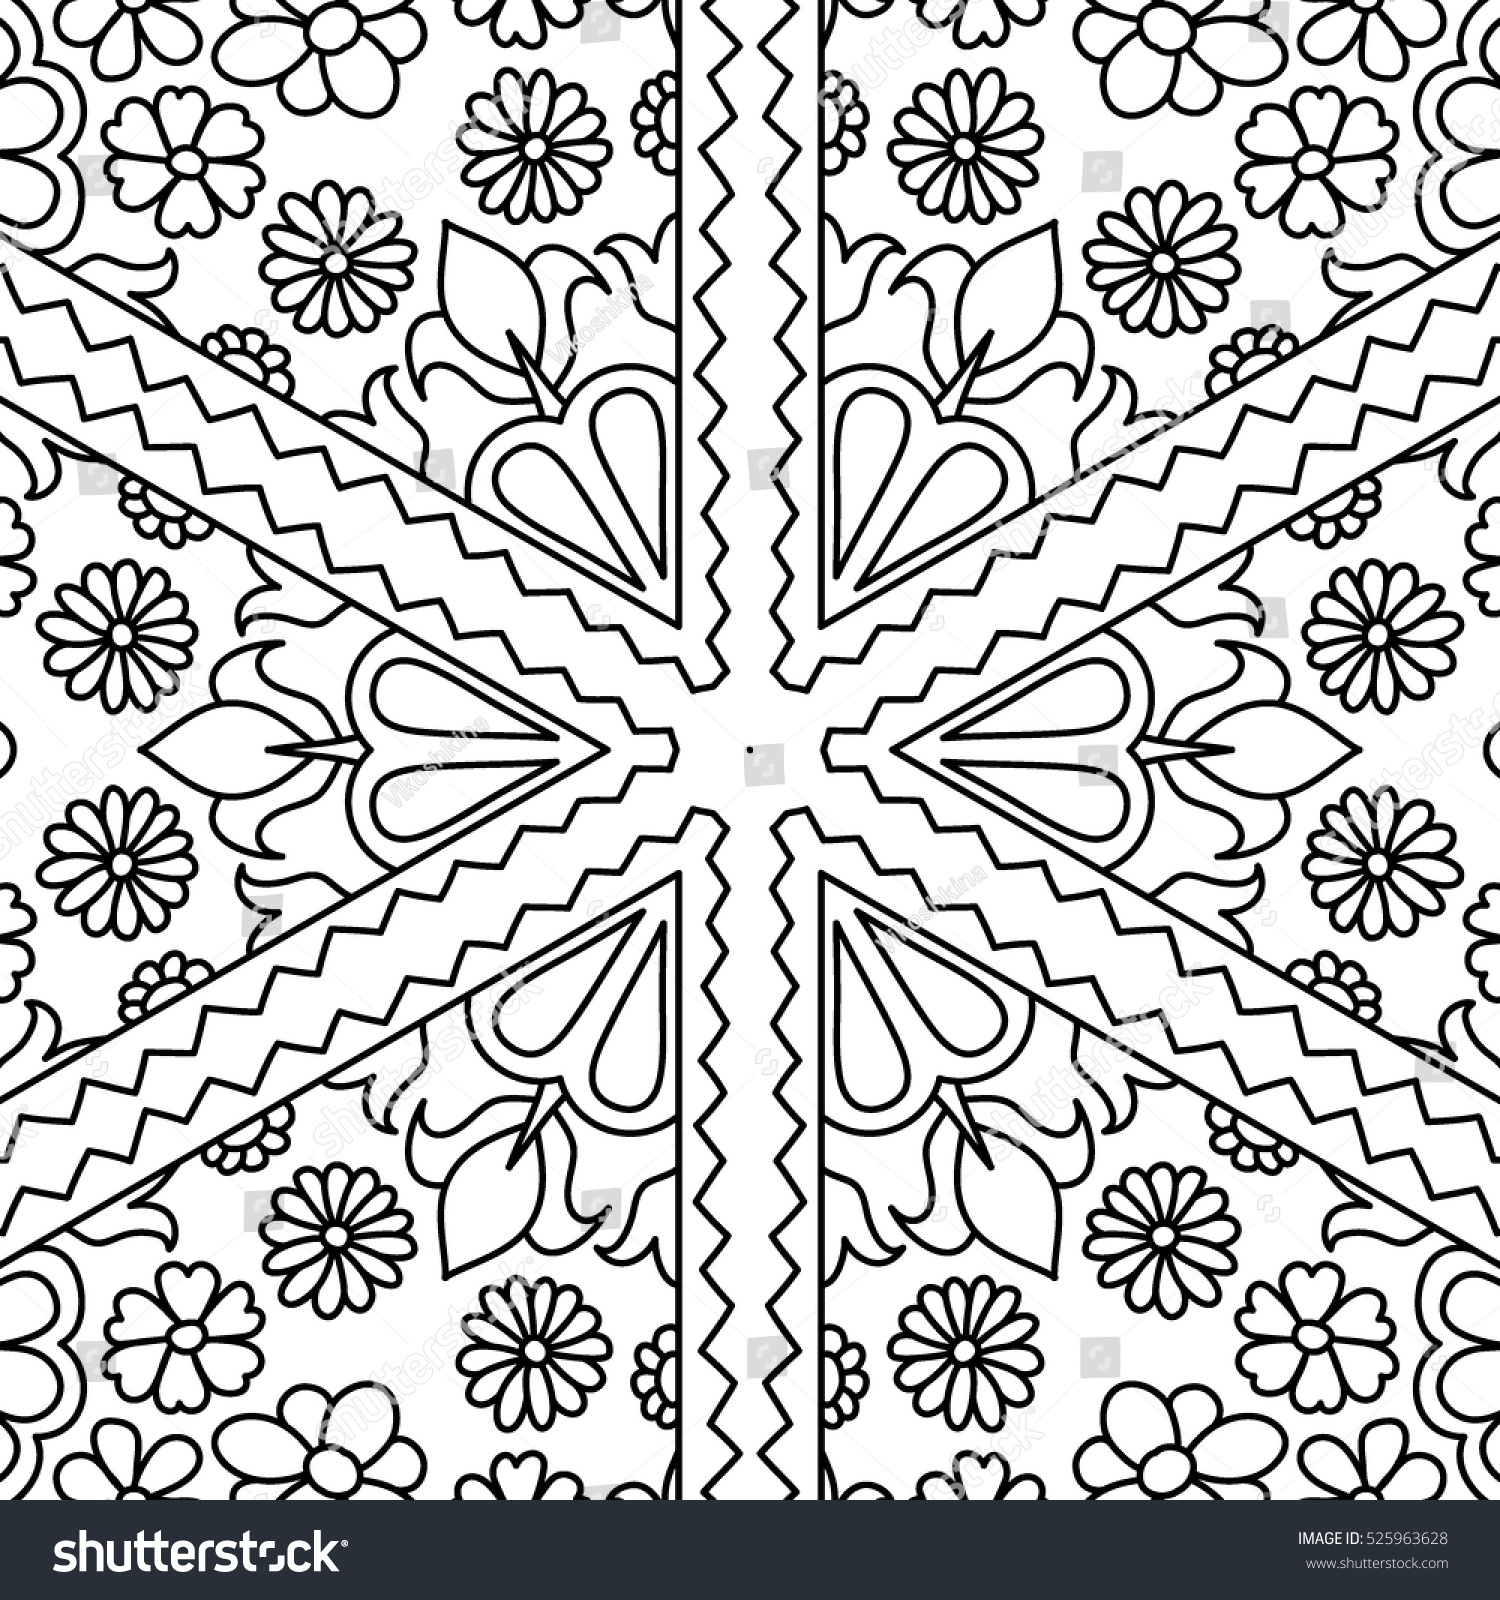 adult coloring book page floral seamless black and white pattern for coloring wallpaper - Coloring Book Wallpaper